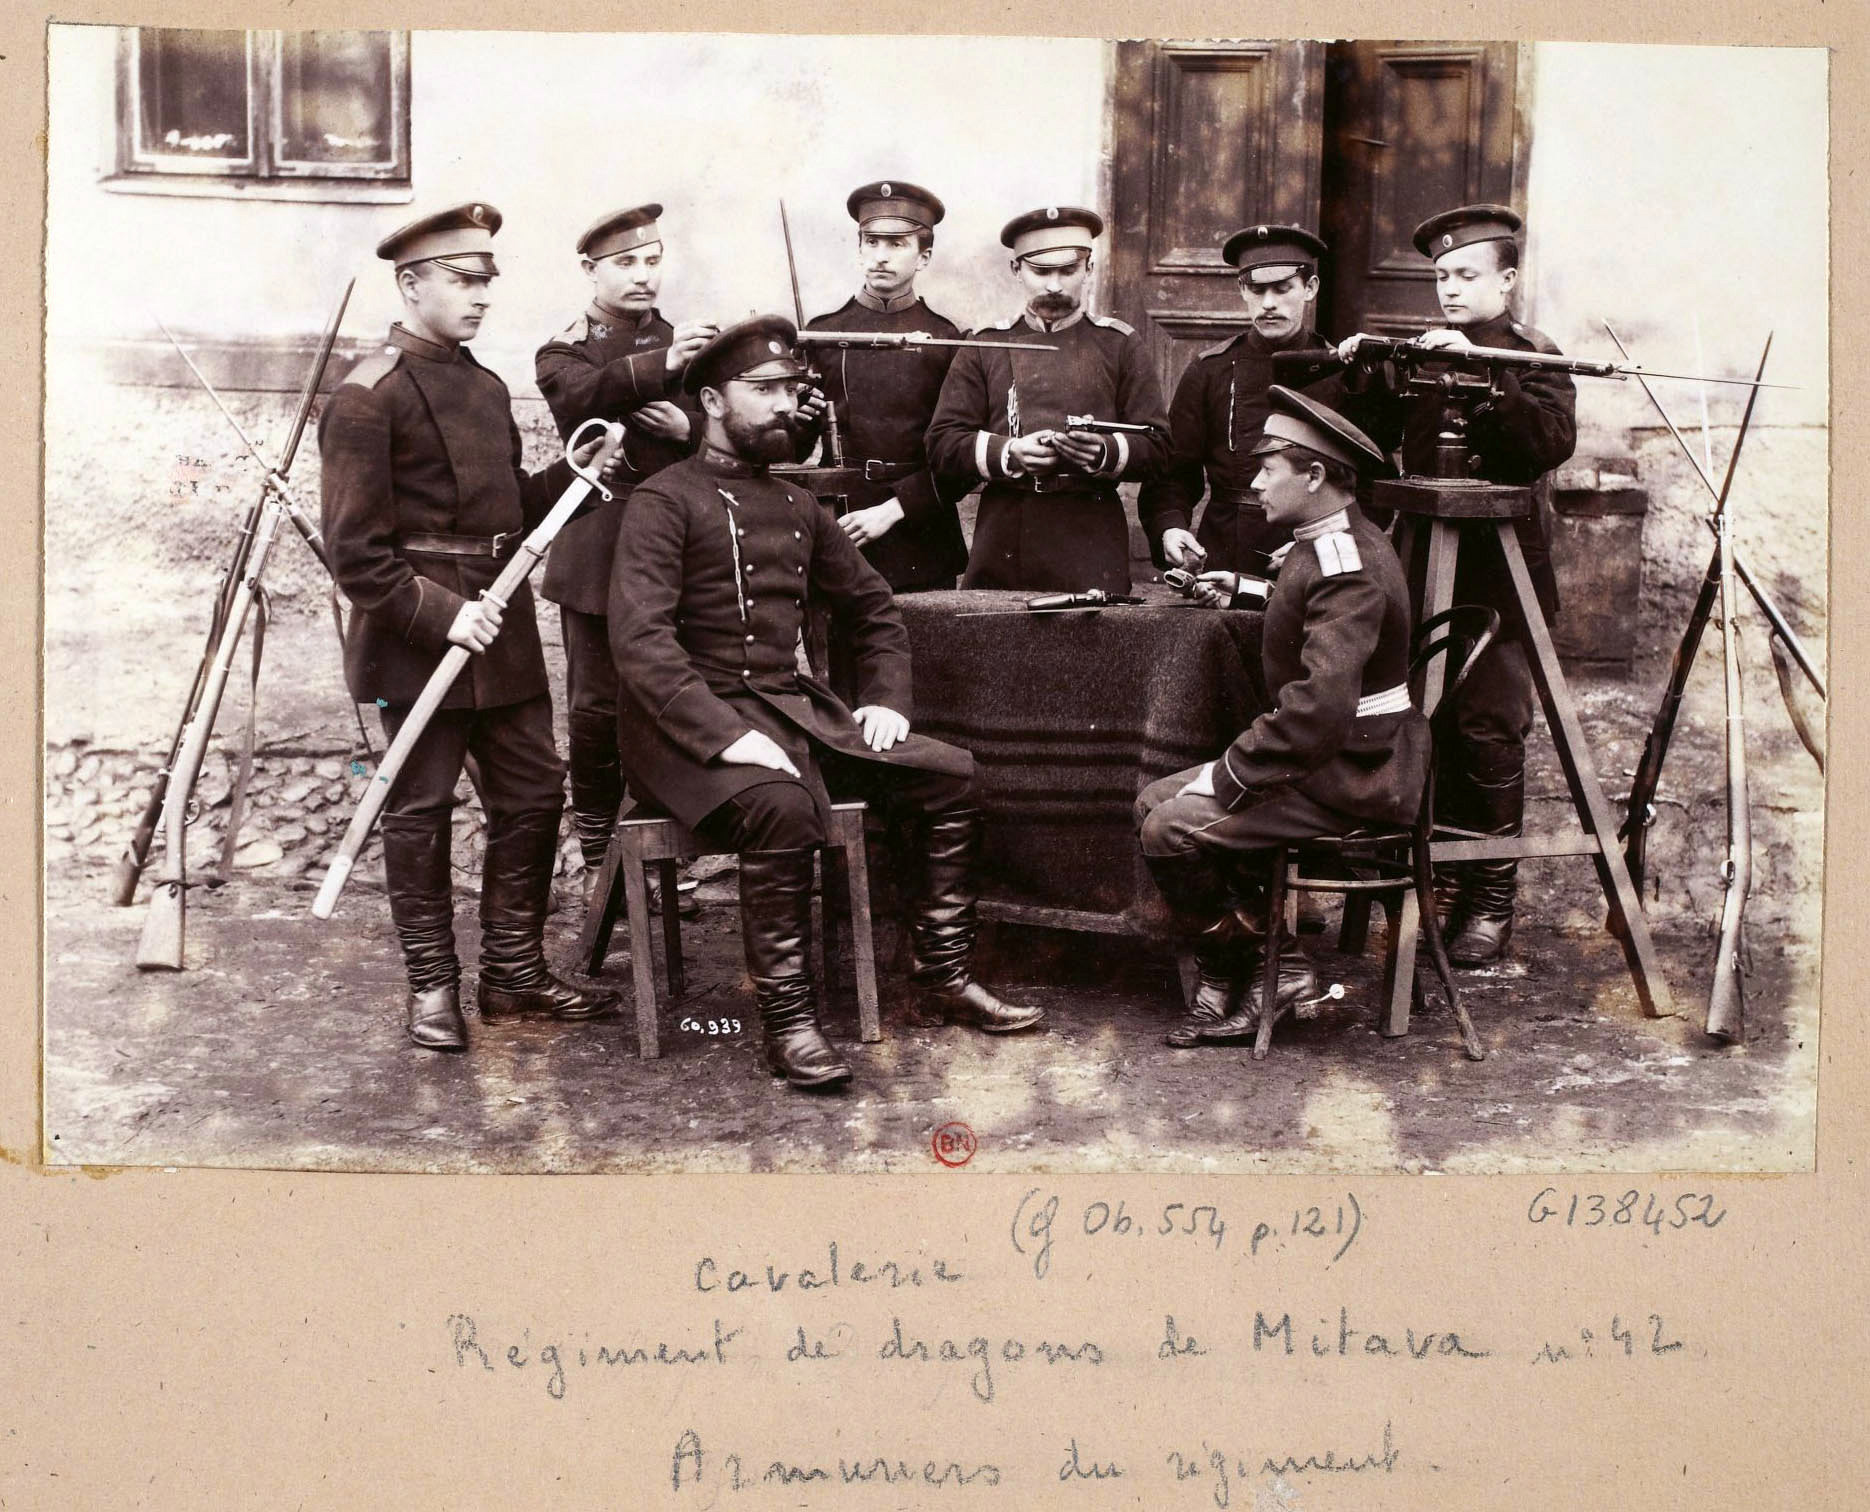 The first part of the russian imperial army photos